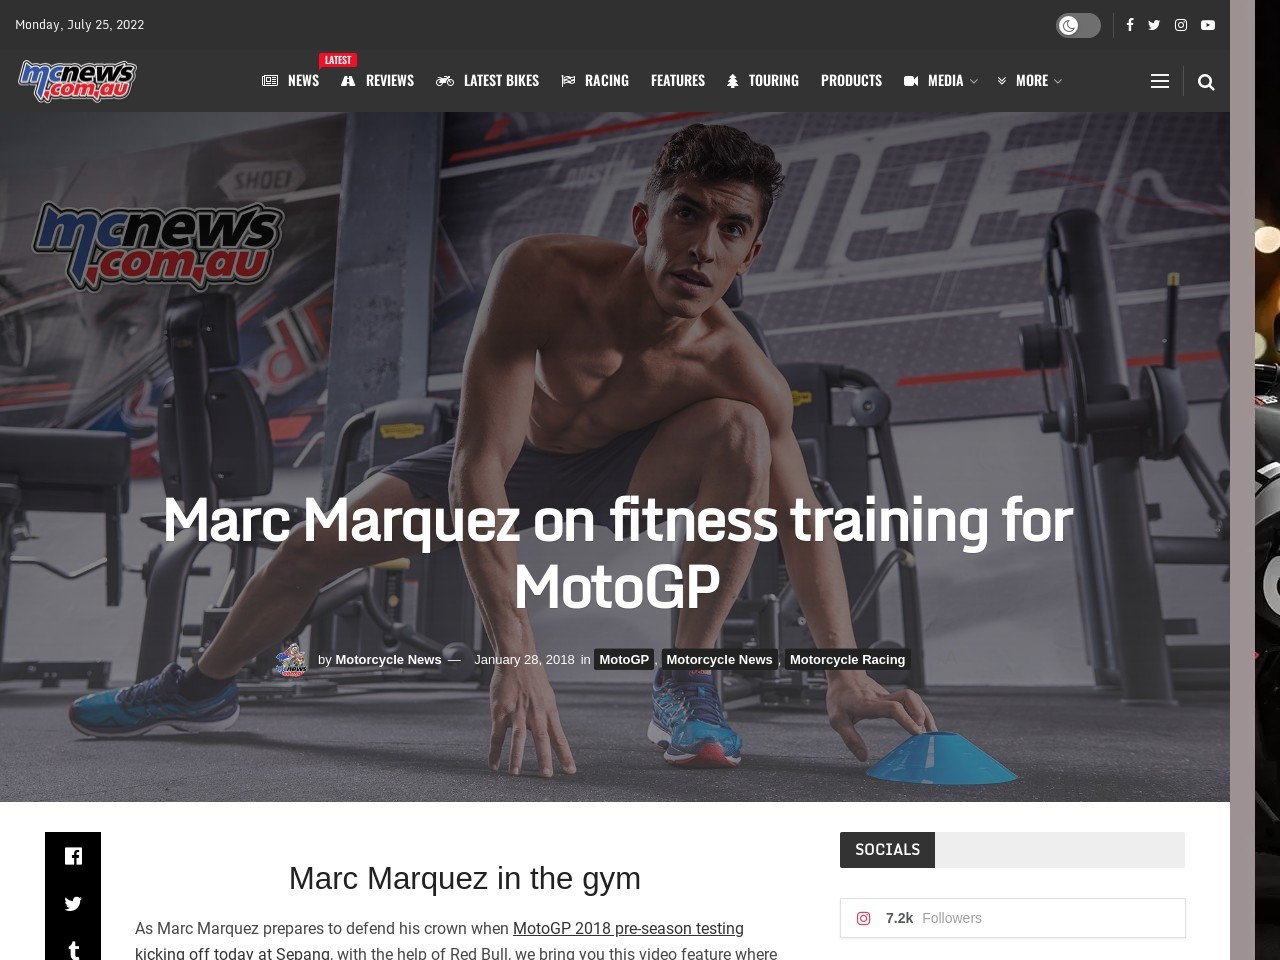 Marc Marquez on fitness training for MotoGP